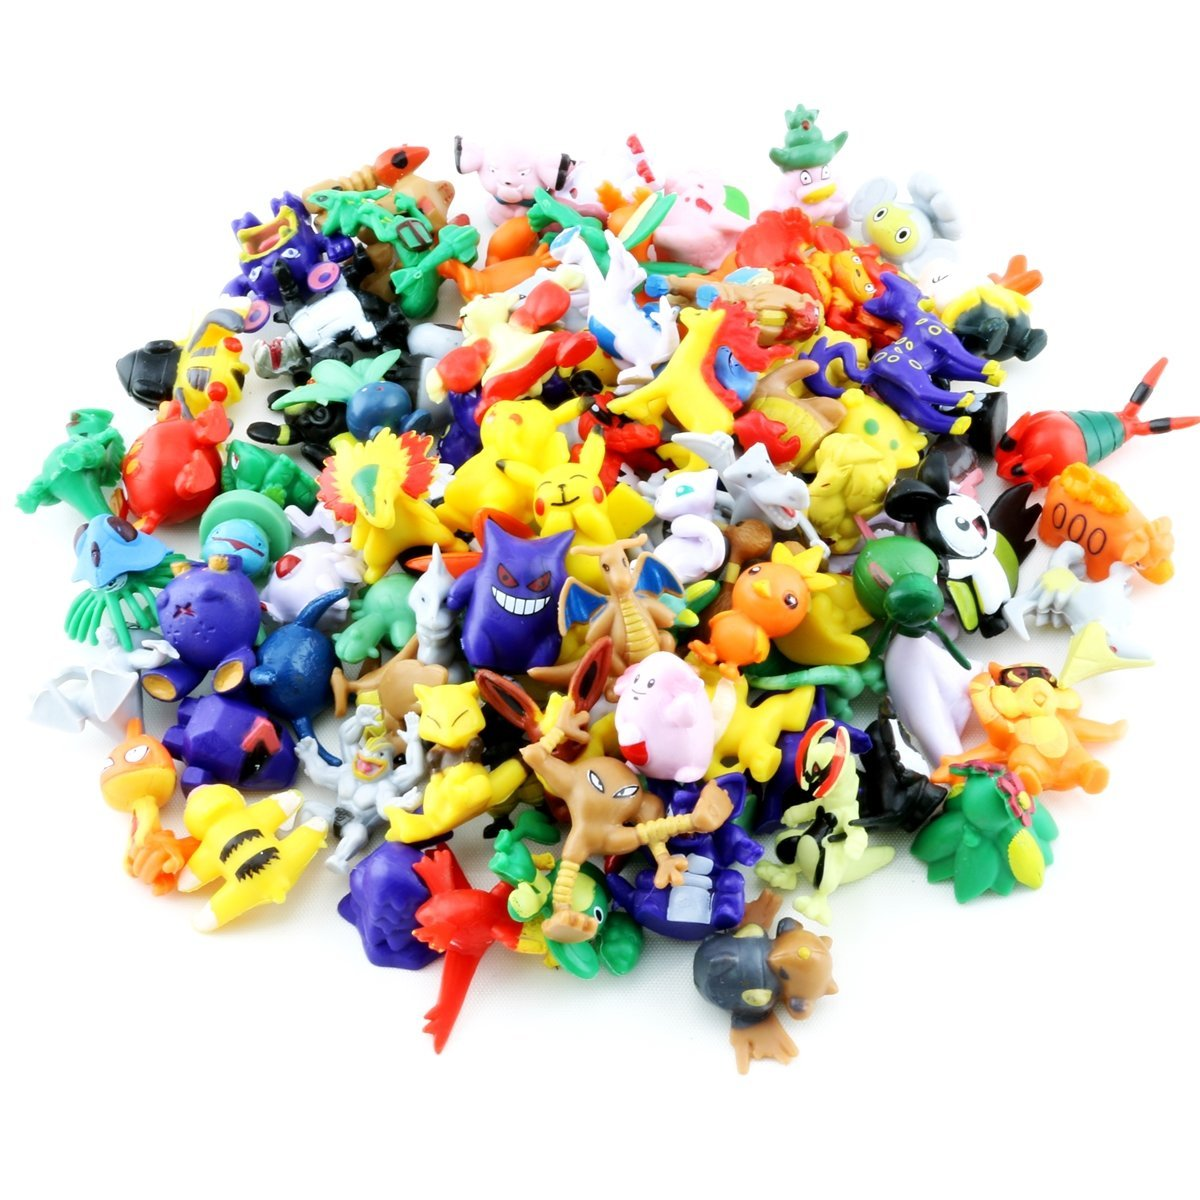 Deal: Get 24 Rubber POKEMON Toys To Decorate Your Desk For $10 ...